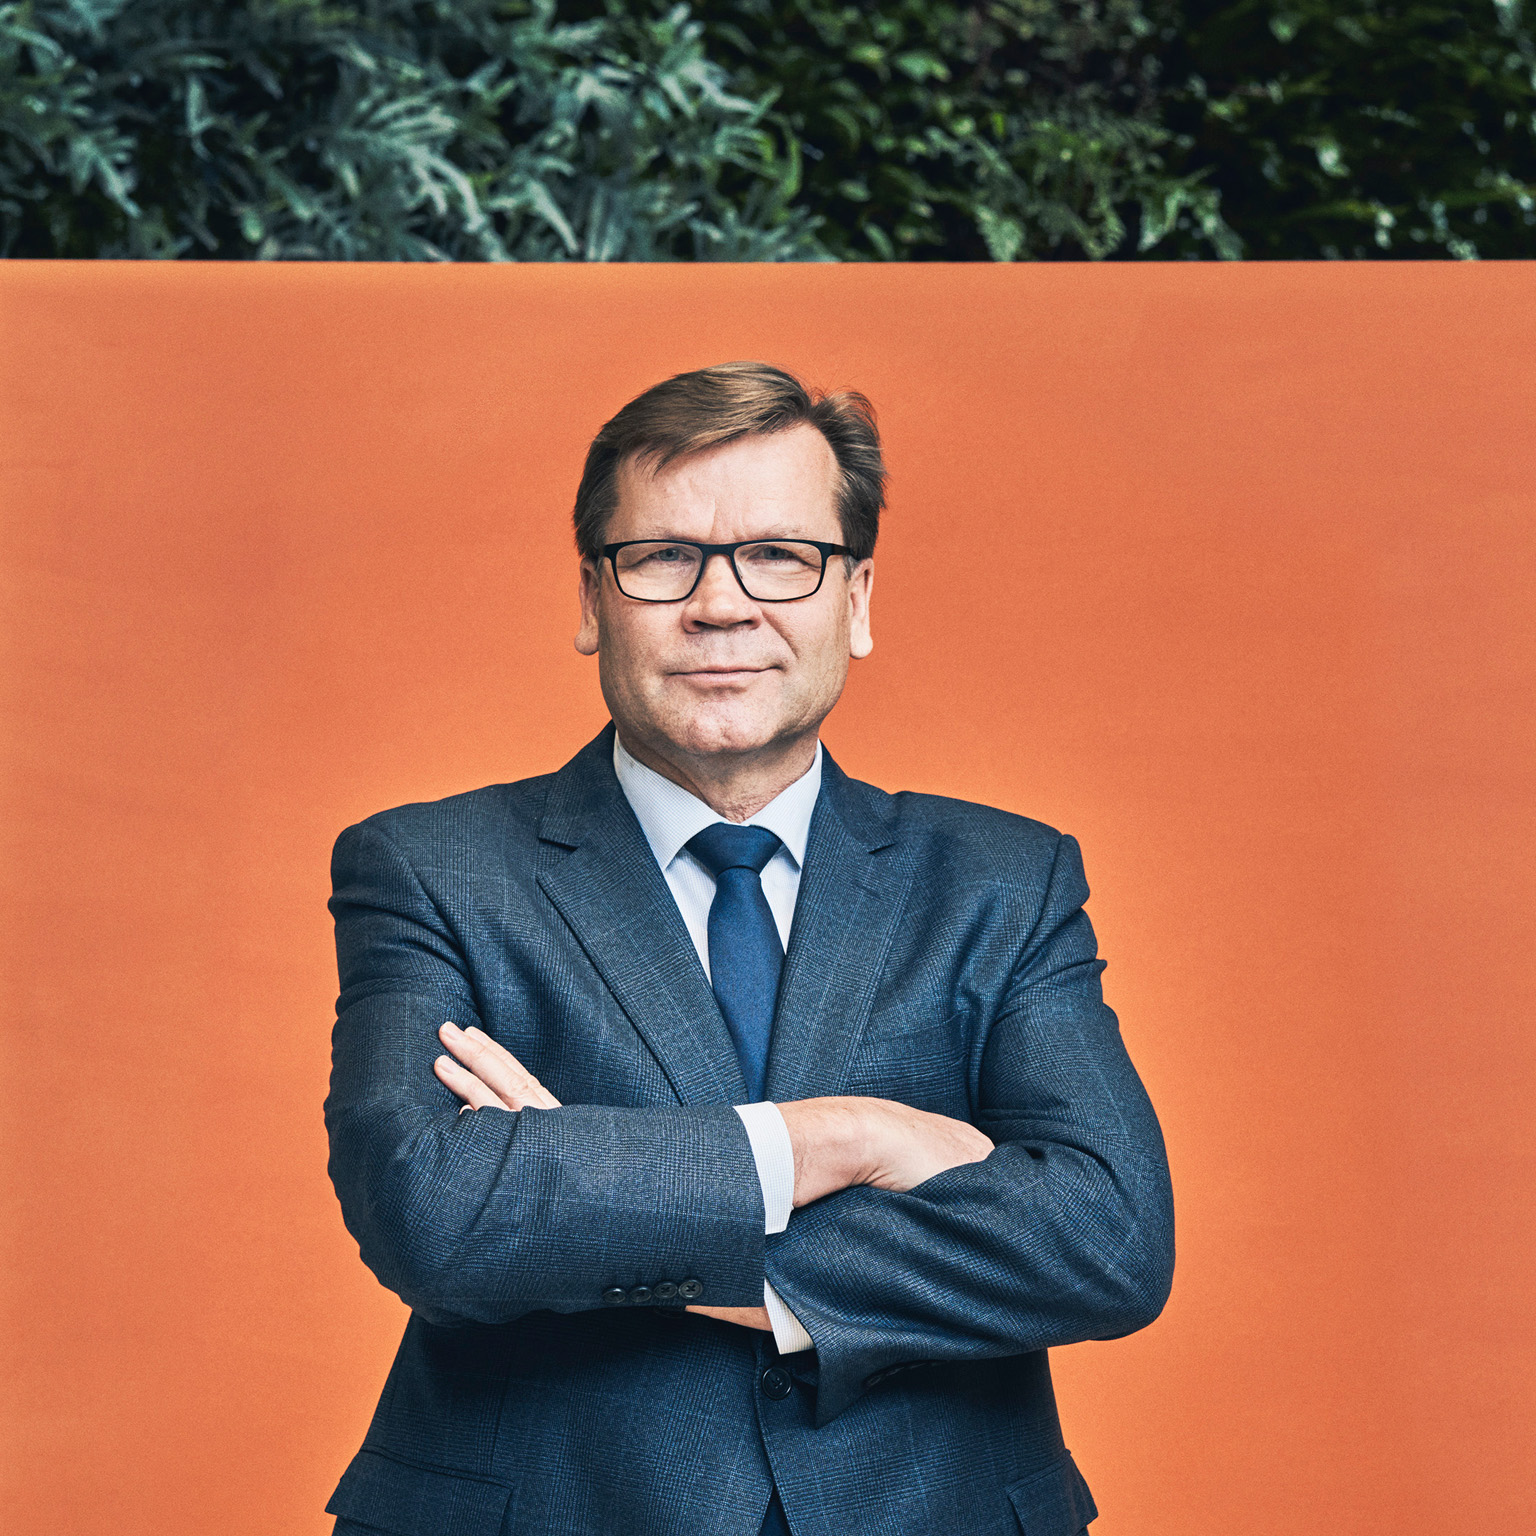 sustainability-and-growth-go-hand-in-hand:-an-interview-with-mikko-helander